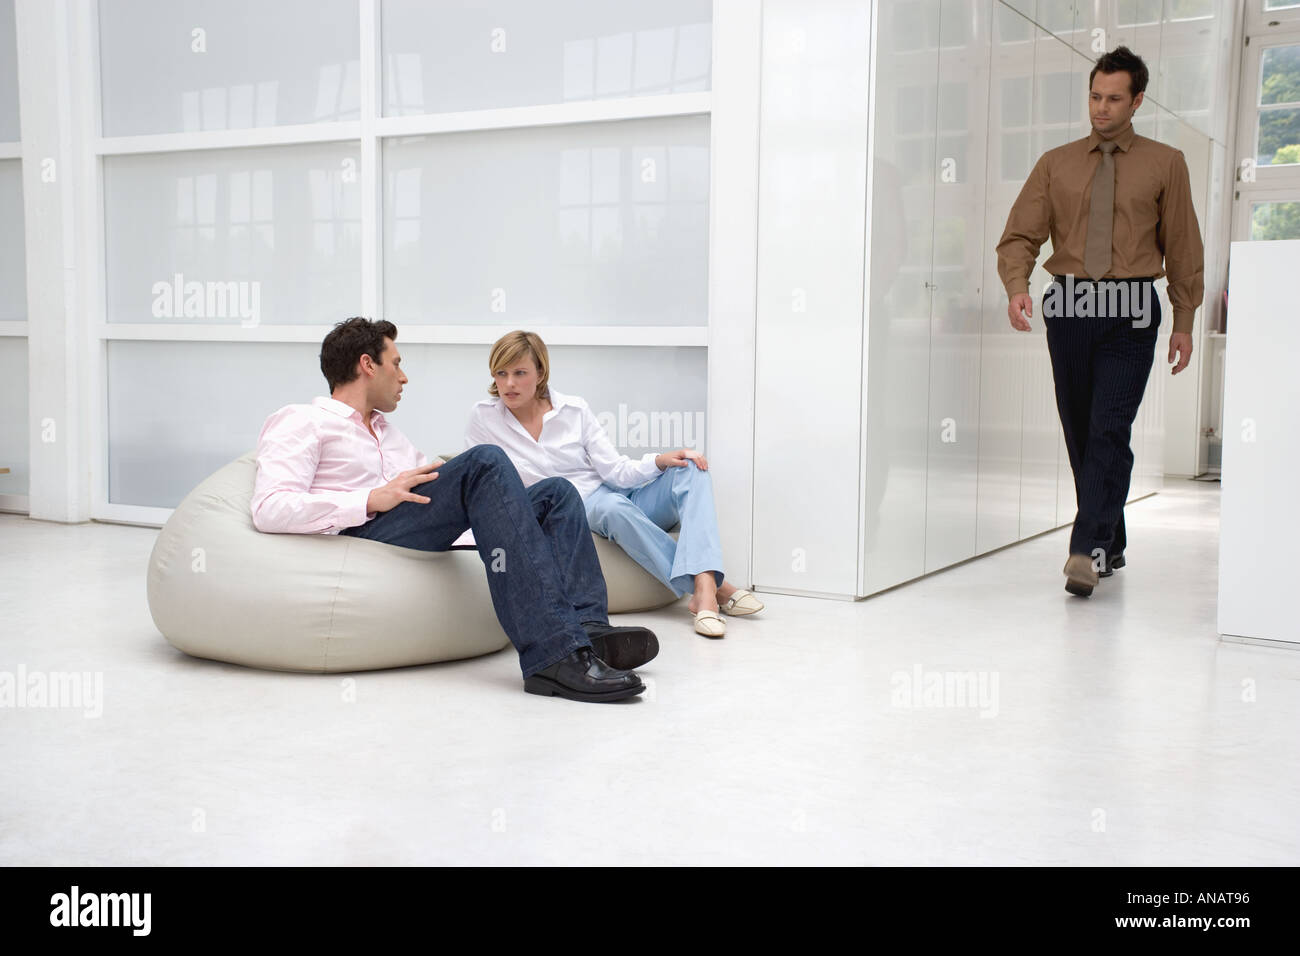 man passing by couple on bean bags in office building - Stock Image